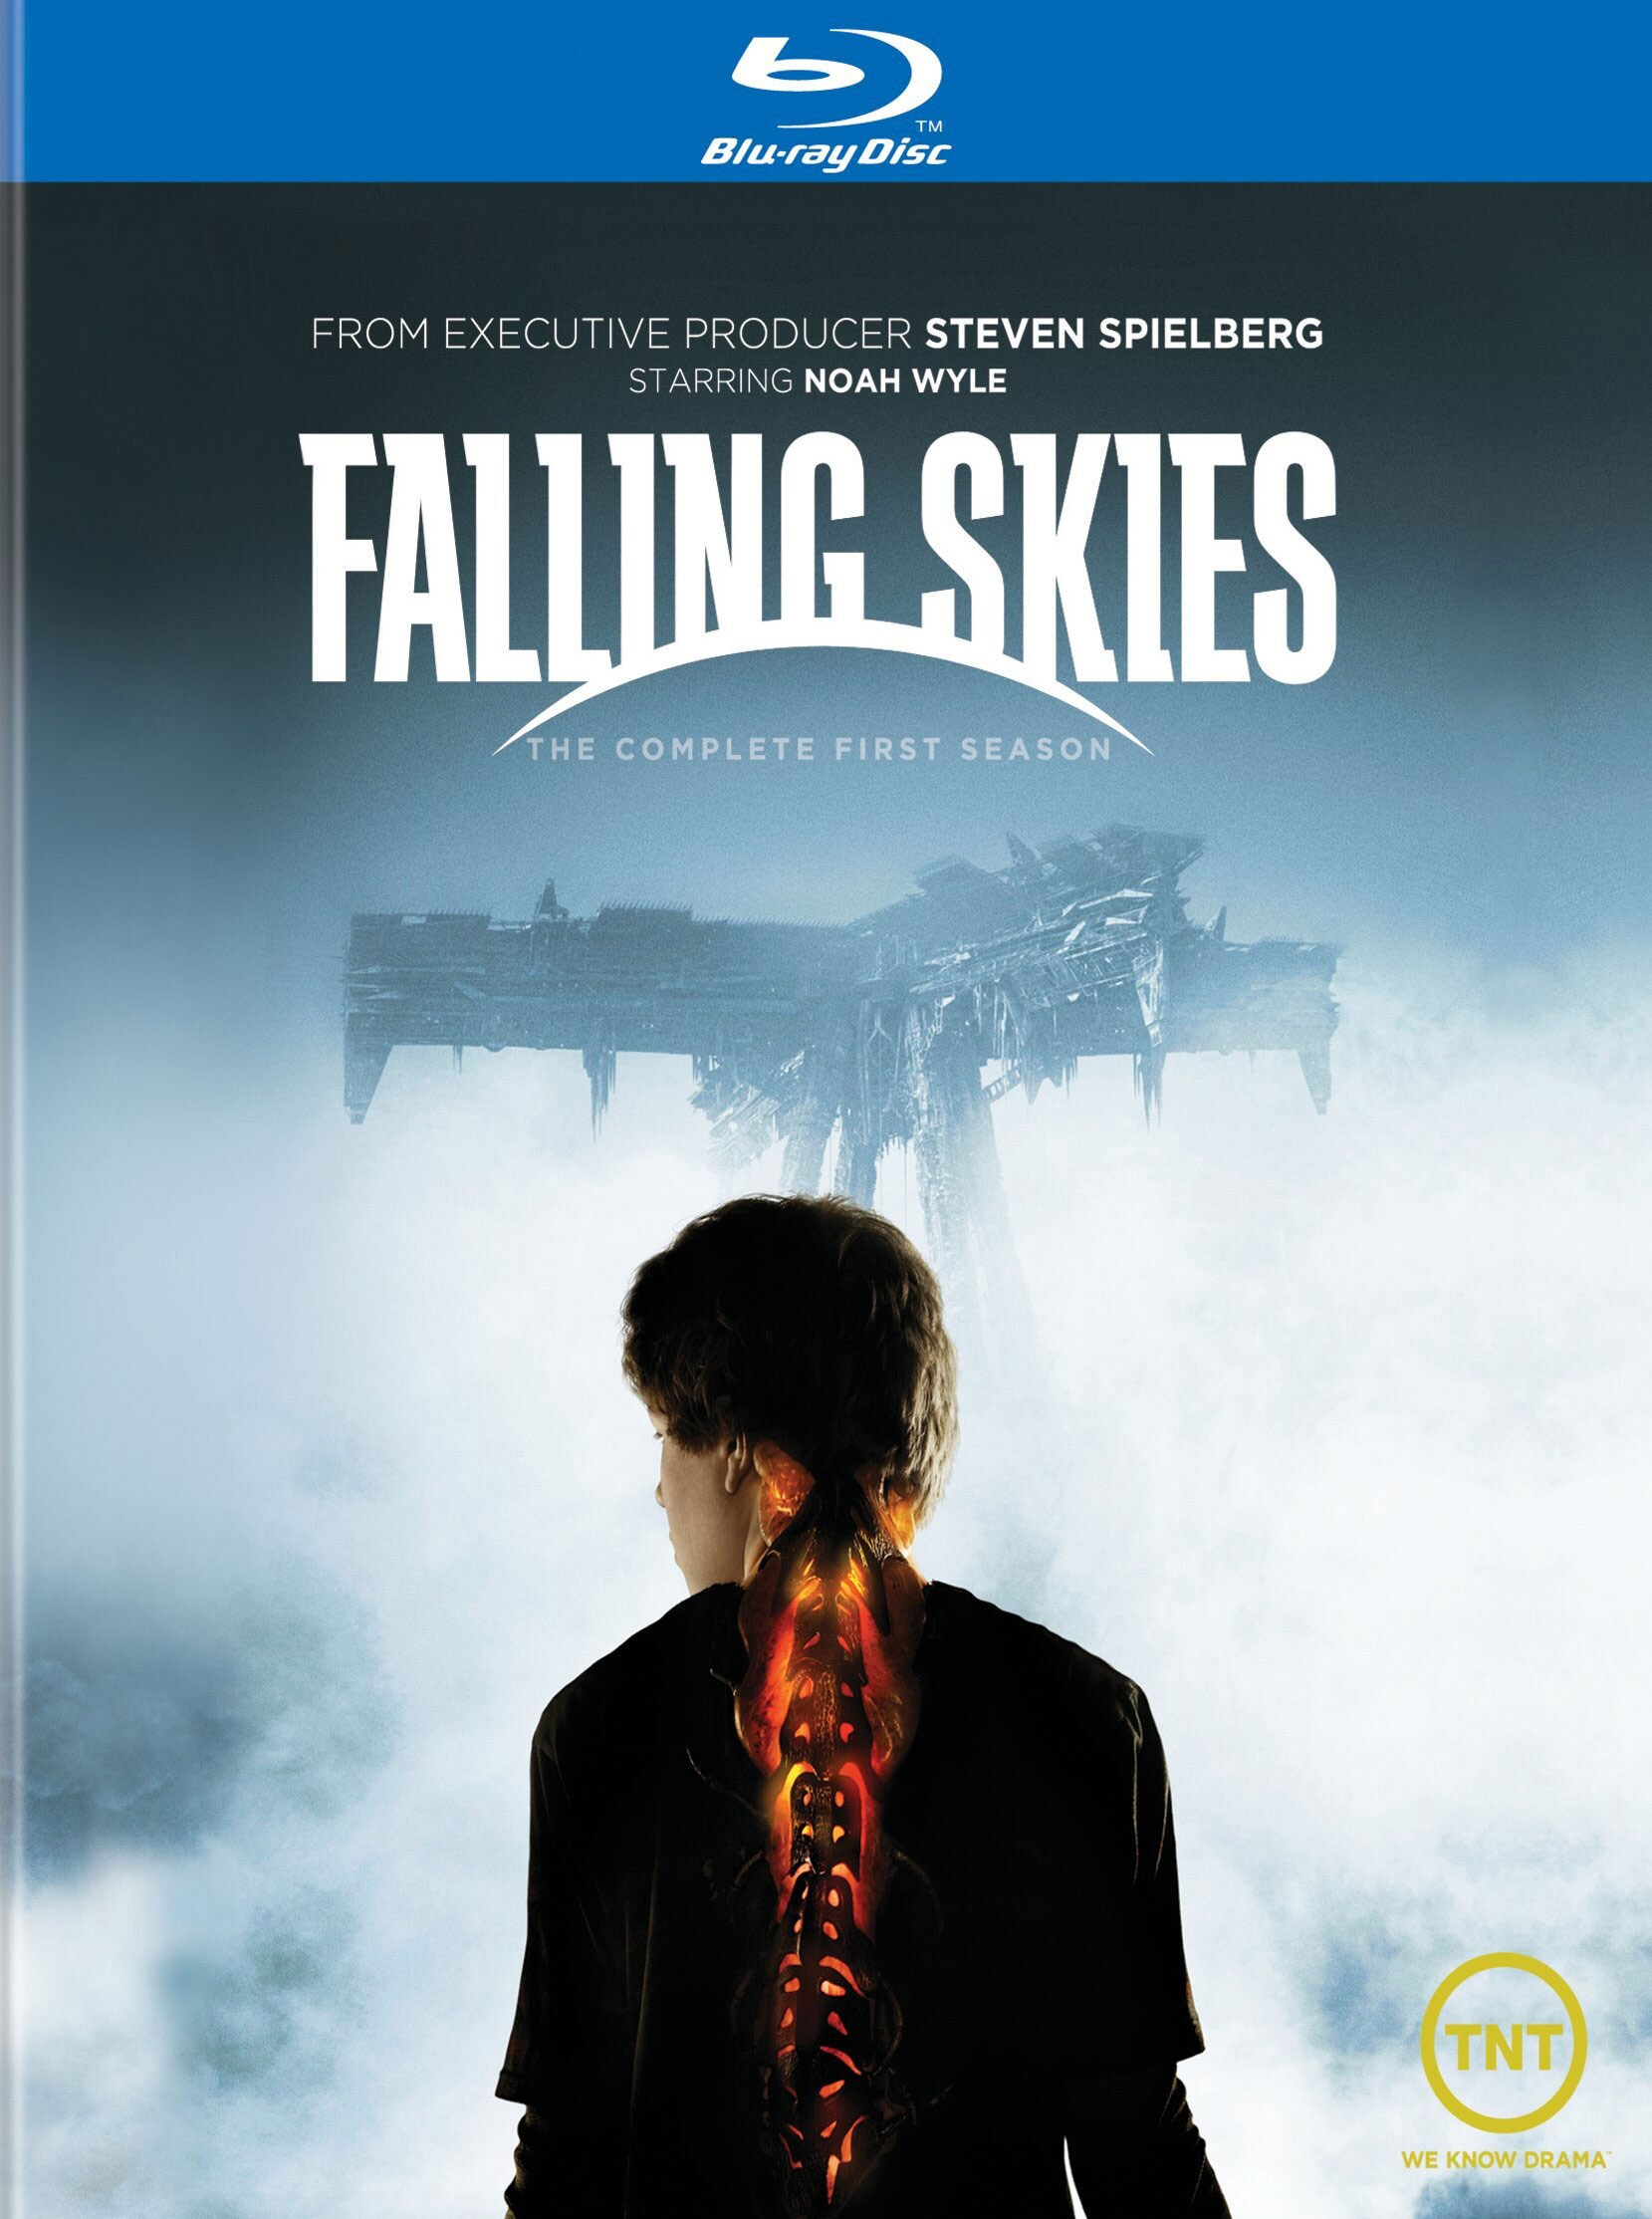 Falling Skies: The Complete First Season (Blu-ray Disc)